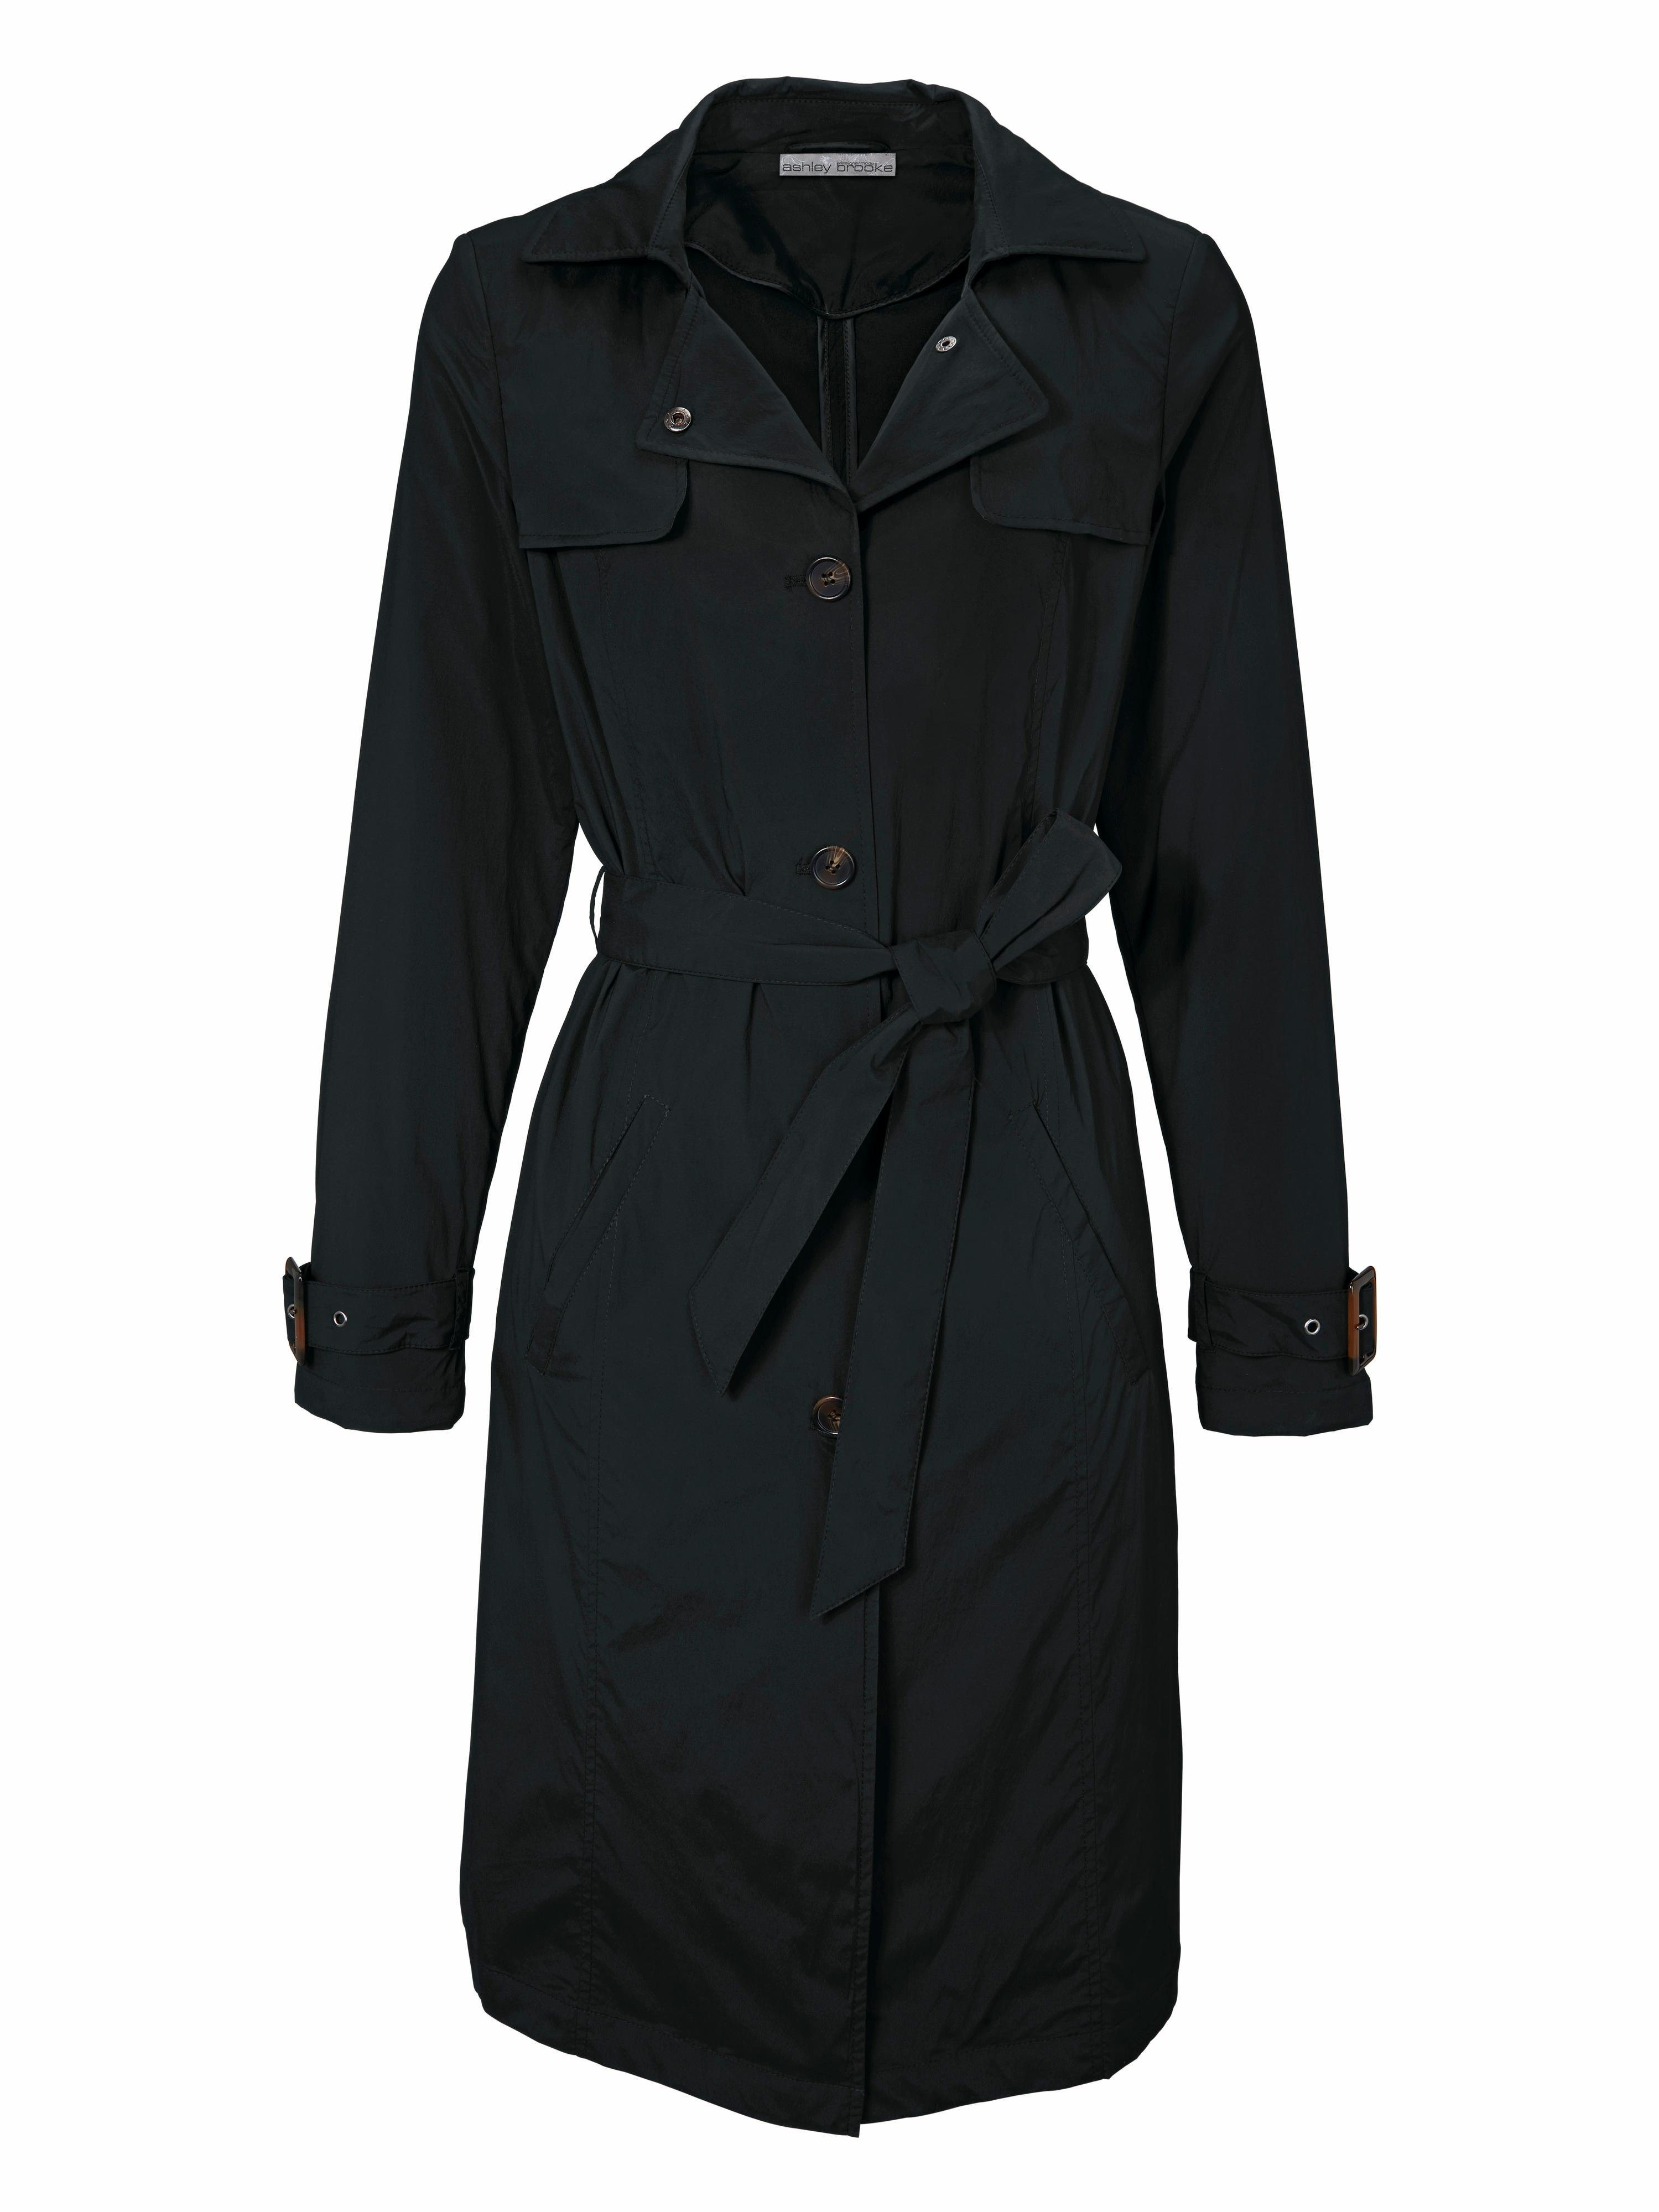 ASHLEY BROOKE by Heine Trenchcoat in leichter Qualität | Bekleidung > Mäntel > Trenchcoats | Ca - Polyester | ASHLEY BROOKE by Heine